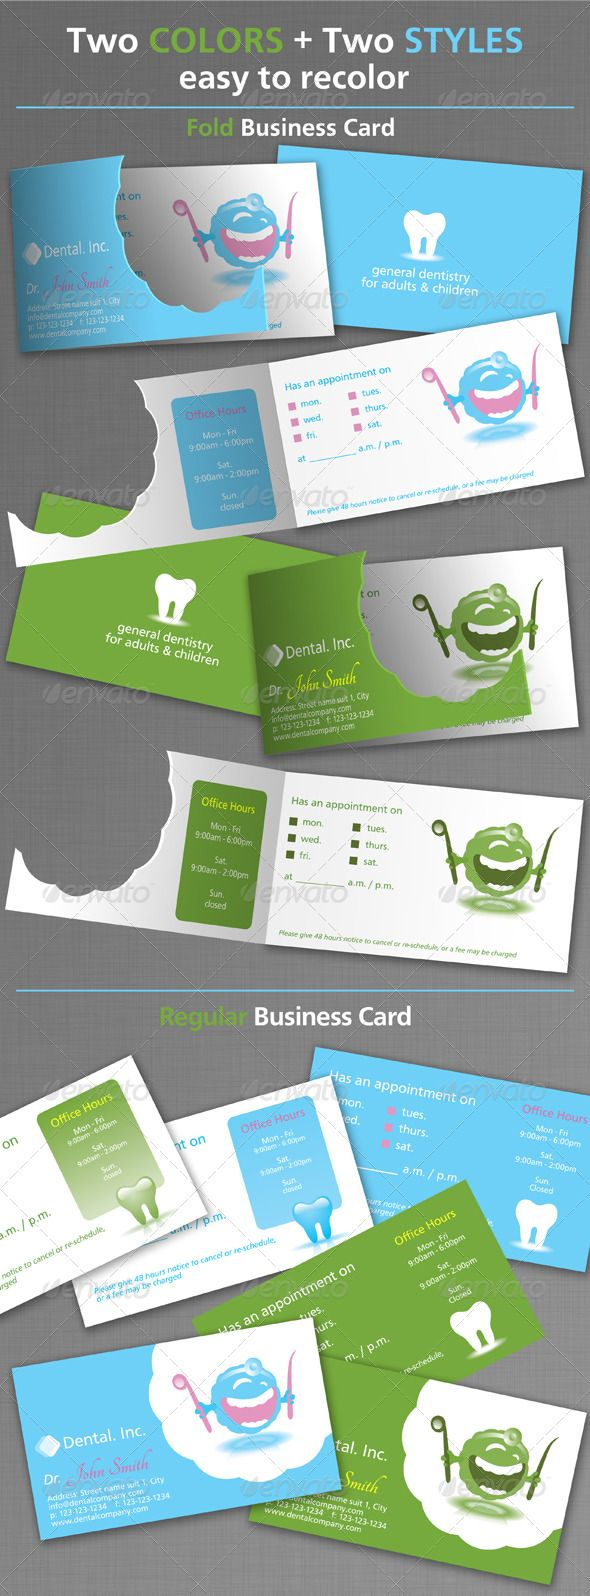 Dental Business Cards #GraphicRiver Dental Business Card Template Color Mode: CMYK SIZE : 3.75×2.25 inch (with bleed) 3.5X2 inch (standard) The files included are: EPS , AI Two Text fonts can be obtained free from: .fontsquirrel /fonts/CartoGothic-Std .fontsquirrel /fonts/Tangerine Created: 17April11 GraphicsFilesIncluded: VectorEPS Layered: No MinimumAdobeCSVersion: CS PrintDimensions: 3.5x2 Tags: anatomy #blue #brushing #cartoon #clinic #dental #dentalclinic #d...